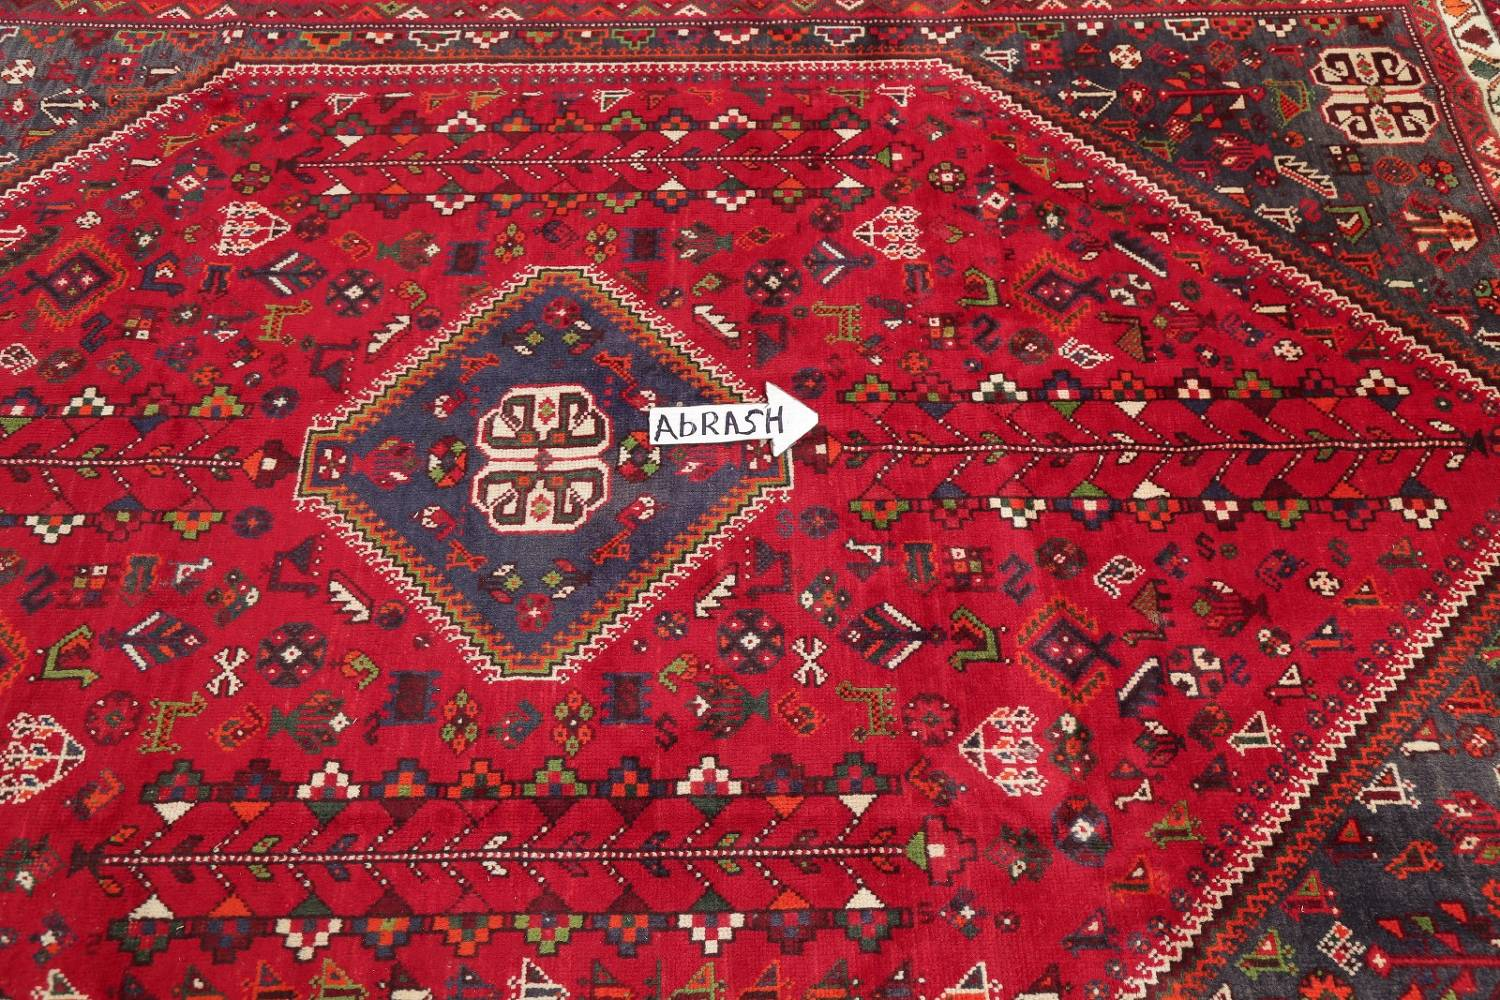 One-of-a-Kind Antique Tribal Shiraz Persian Hand-Knotted 7x10 Wool Area Rug image 8